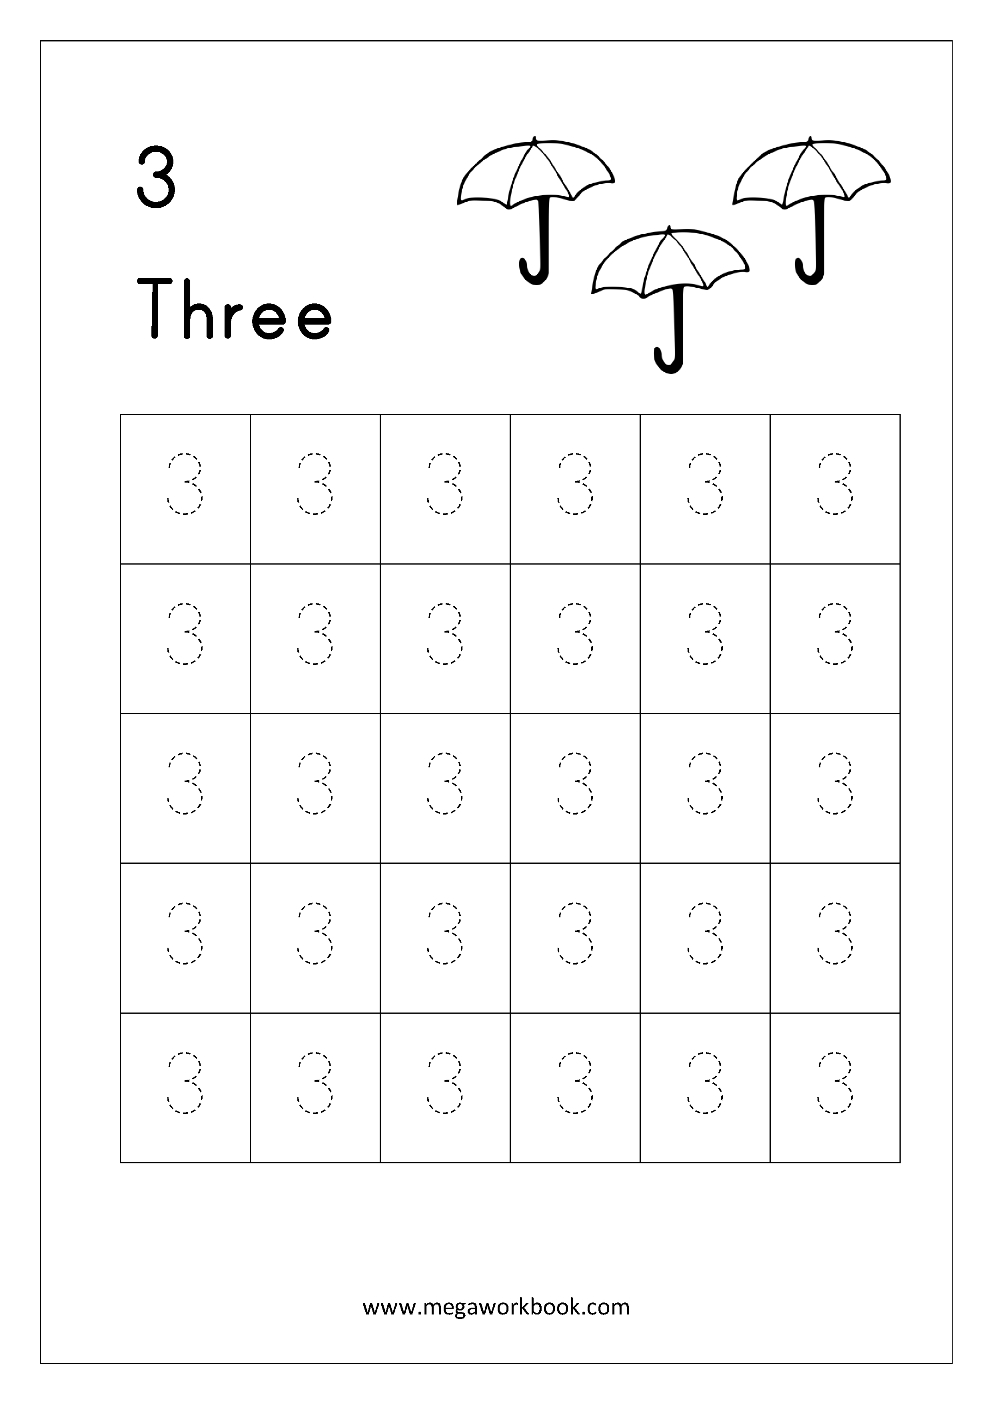 Free Printable Number Tracing And Writing (1-10) Worksheets - Number - Free Printable Number Worksheets